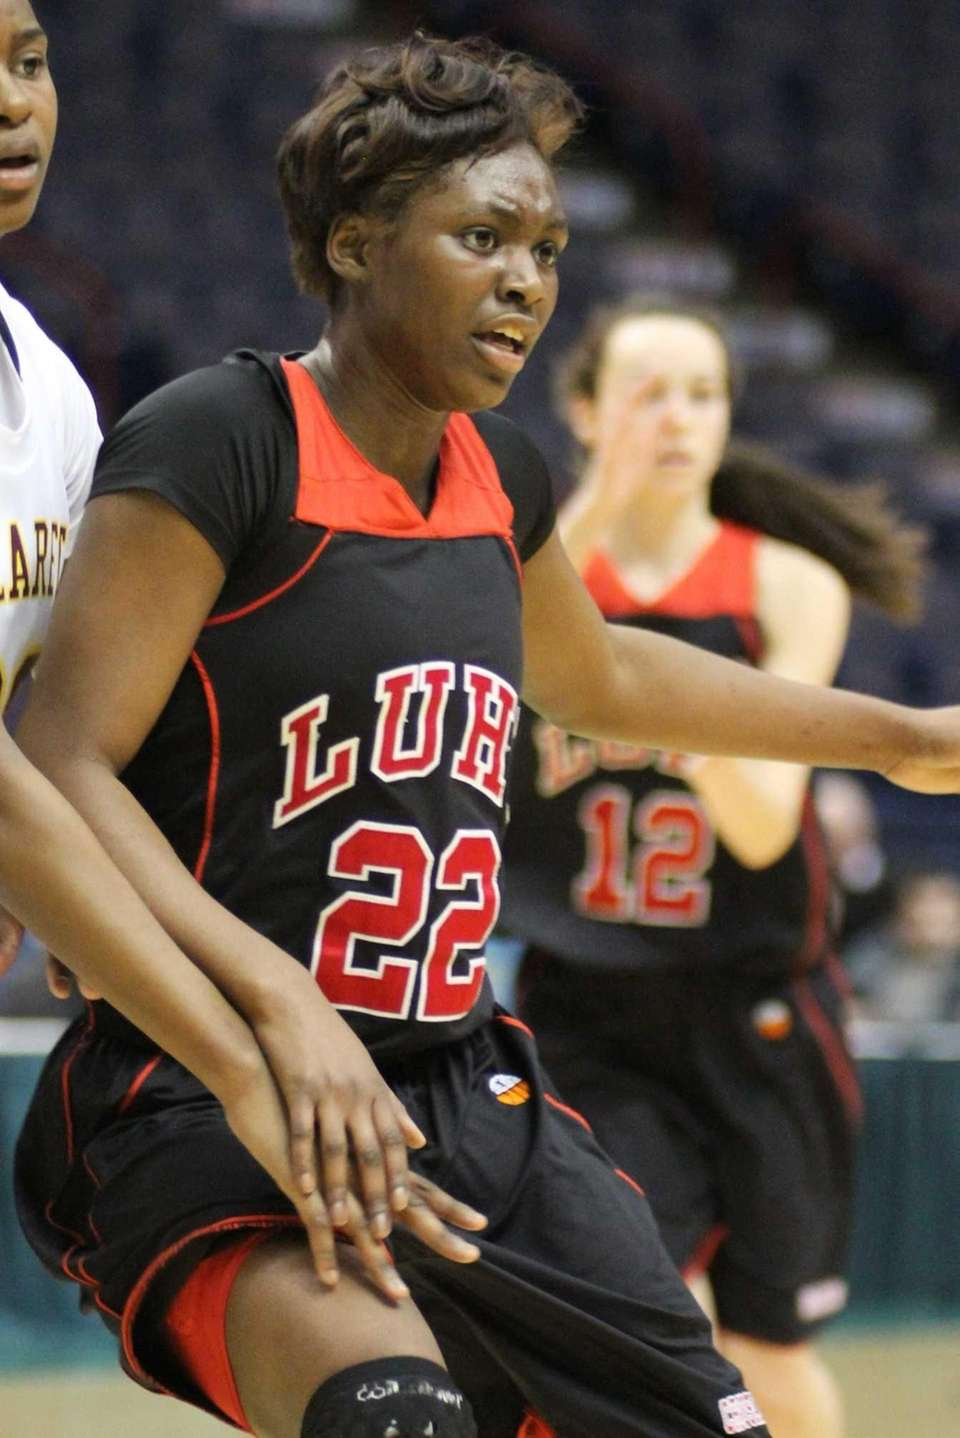 Long Island Lutheran's Staci Barrett fights for position